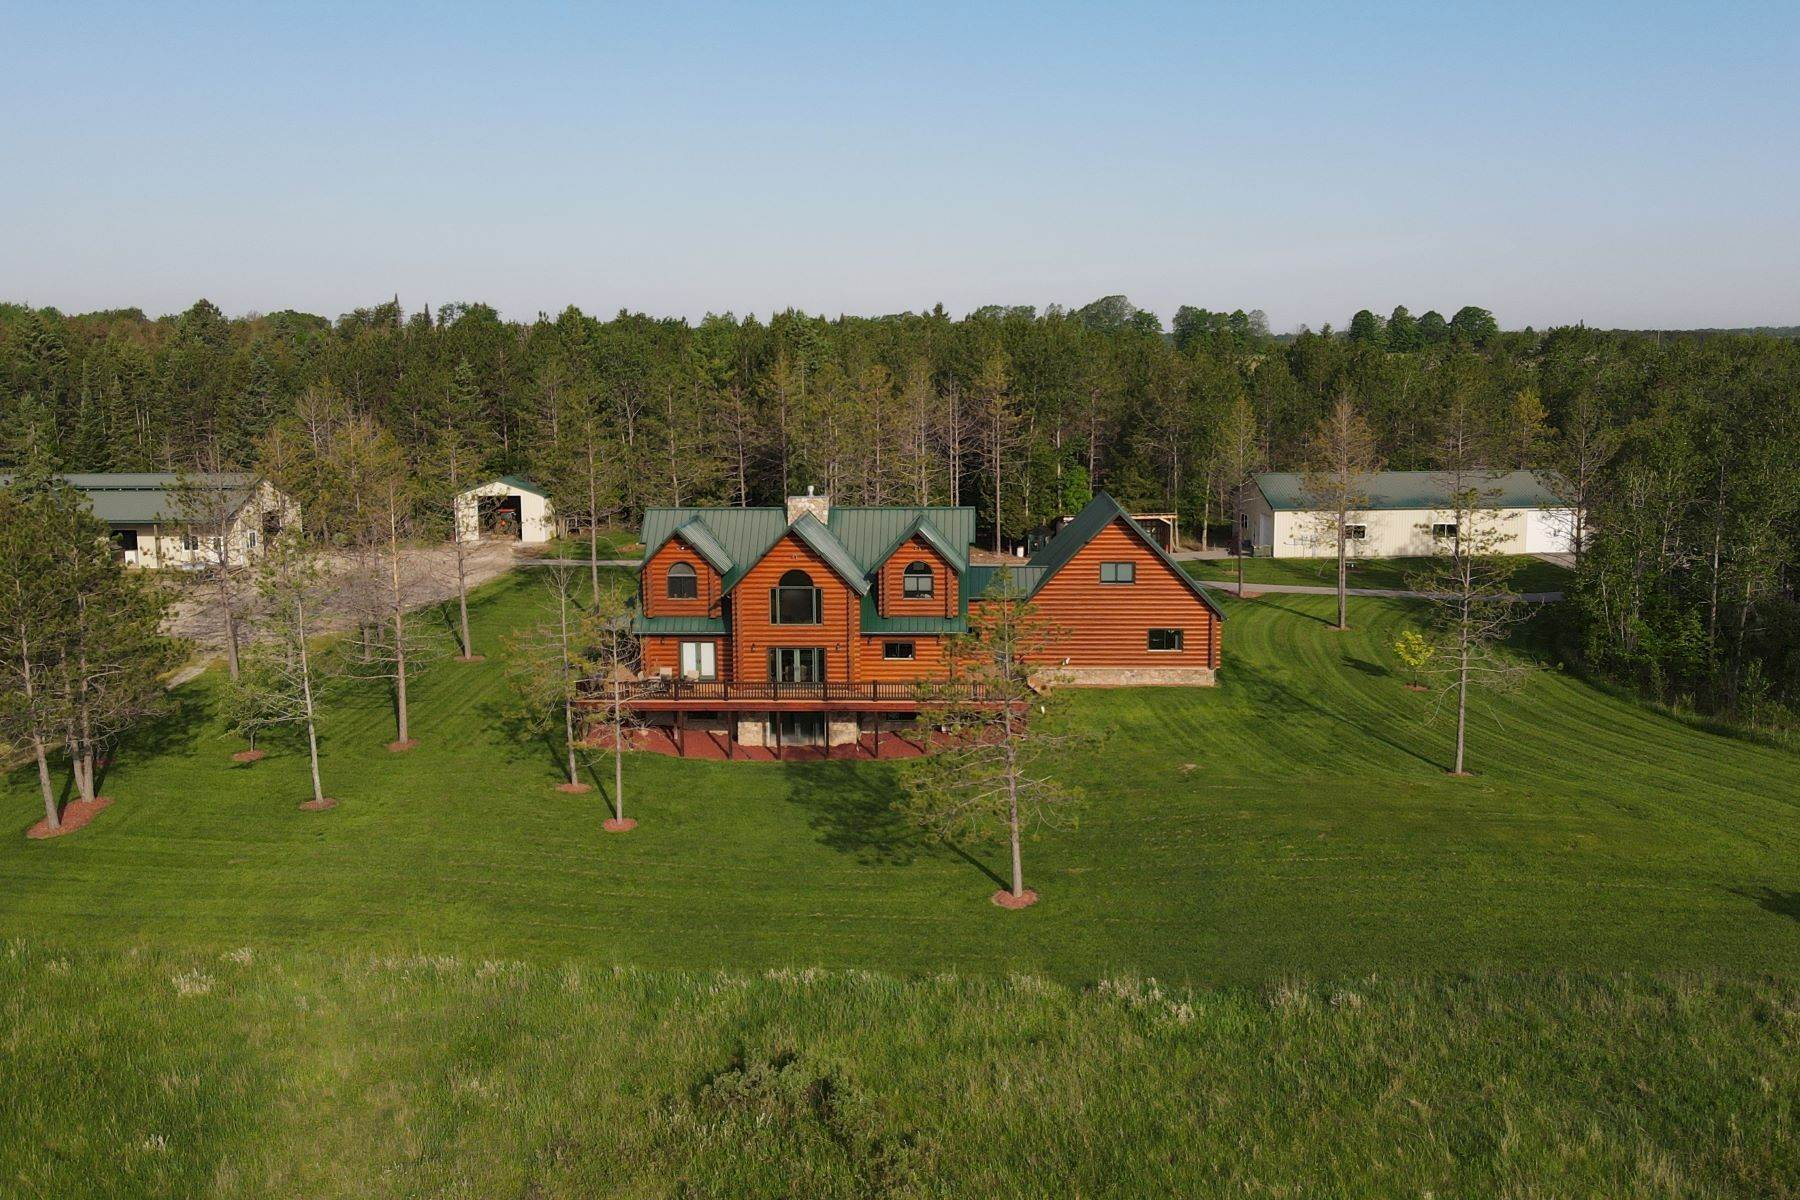 Single Family Homes for Sale at Hiawatha log home and equestrian estate on 80 acres 14493 Werth Road Lachine, Michigan 49753 United States